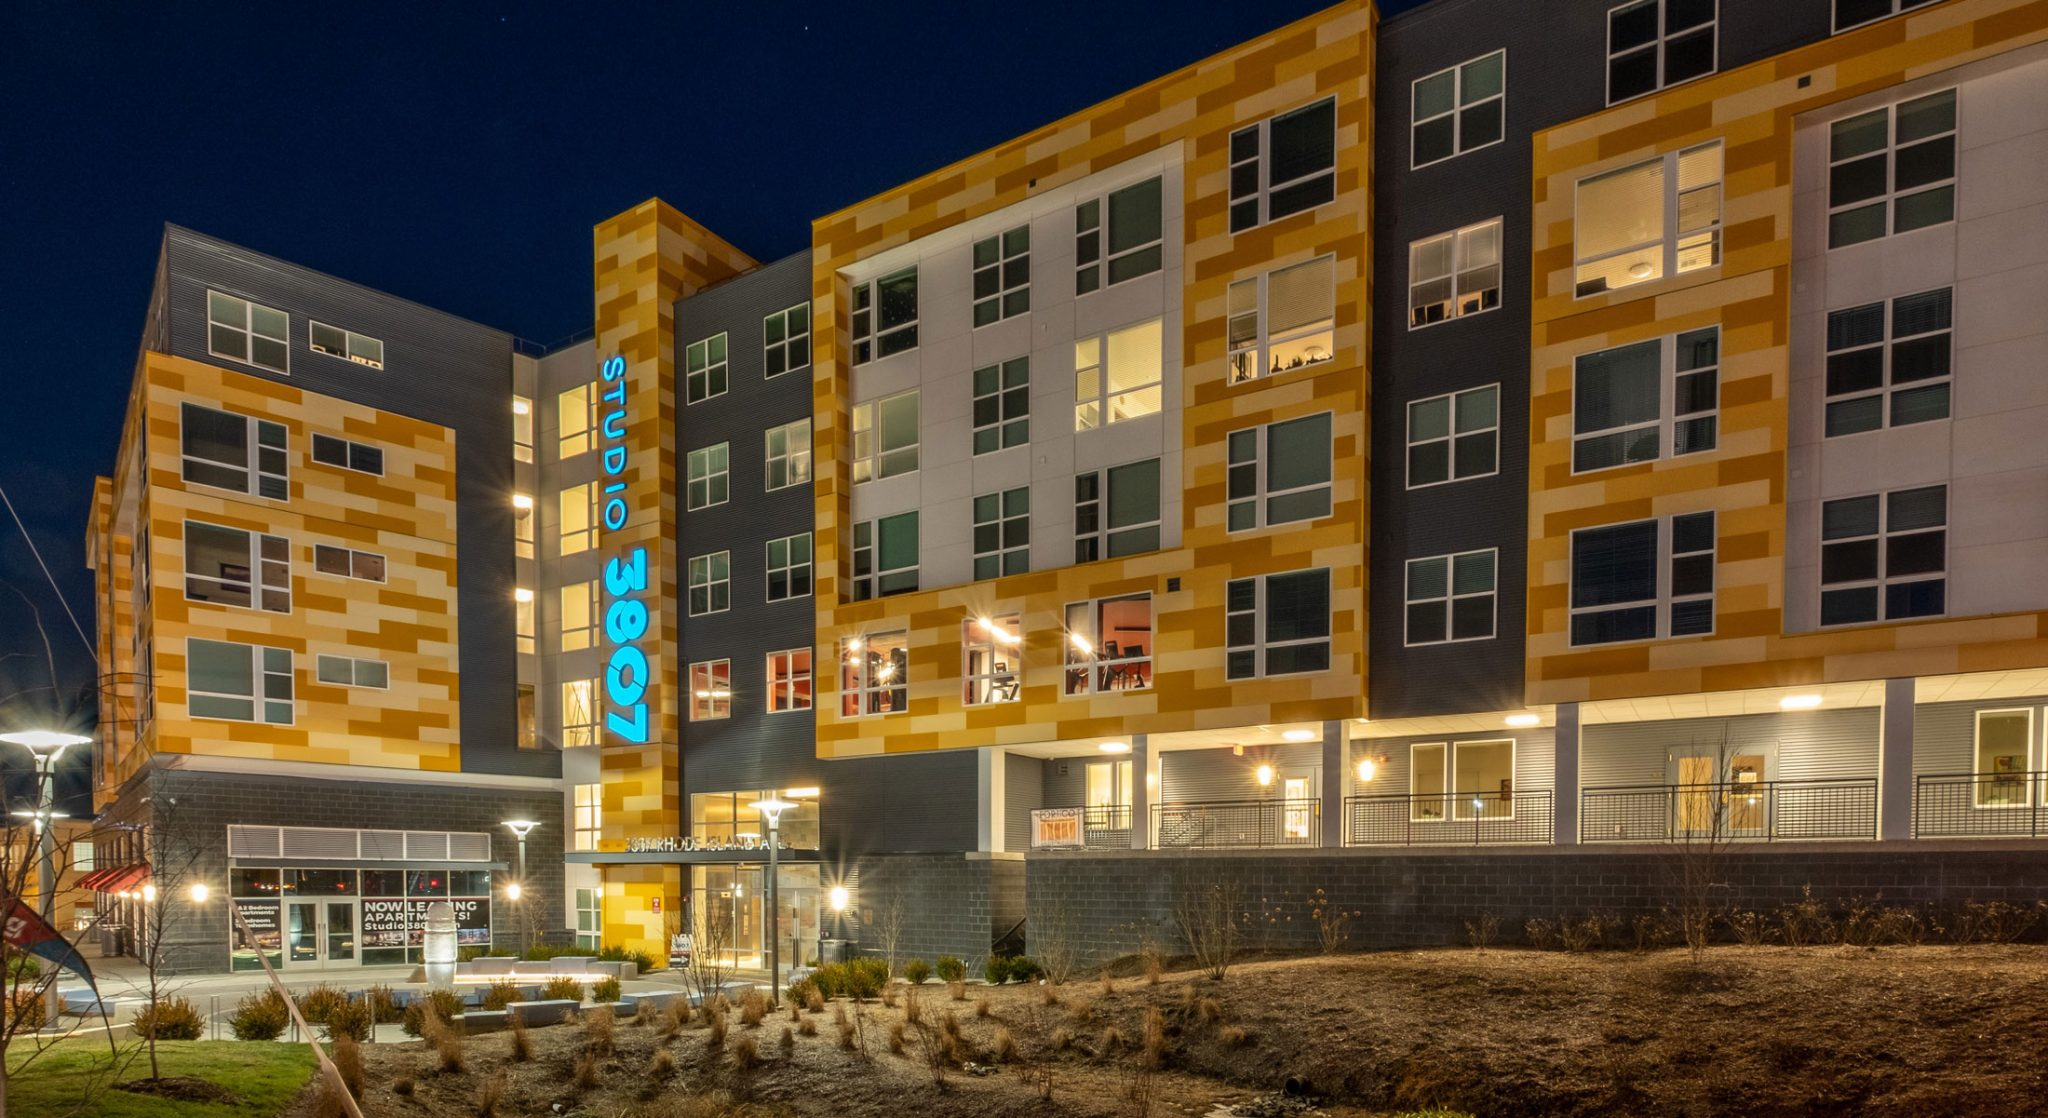 Studio 3807 Exterior apartment complex that includes grilling kitchens and fire pits